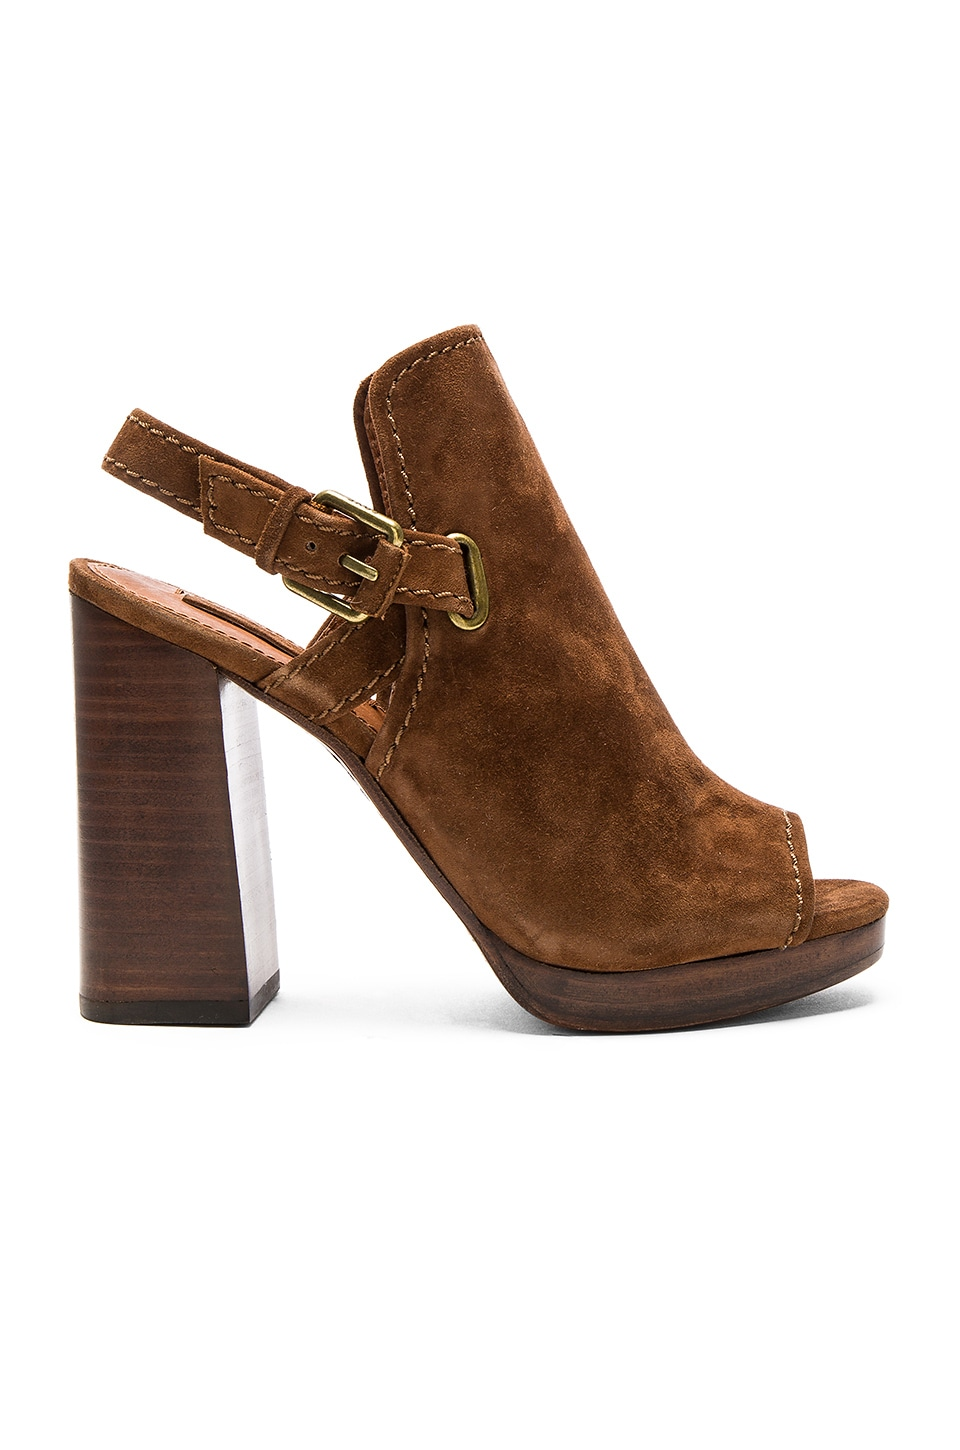 Frye Karissa Shield Sling Sandal in Wood